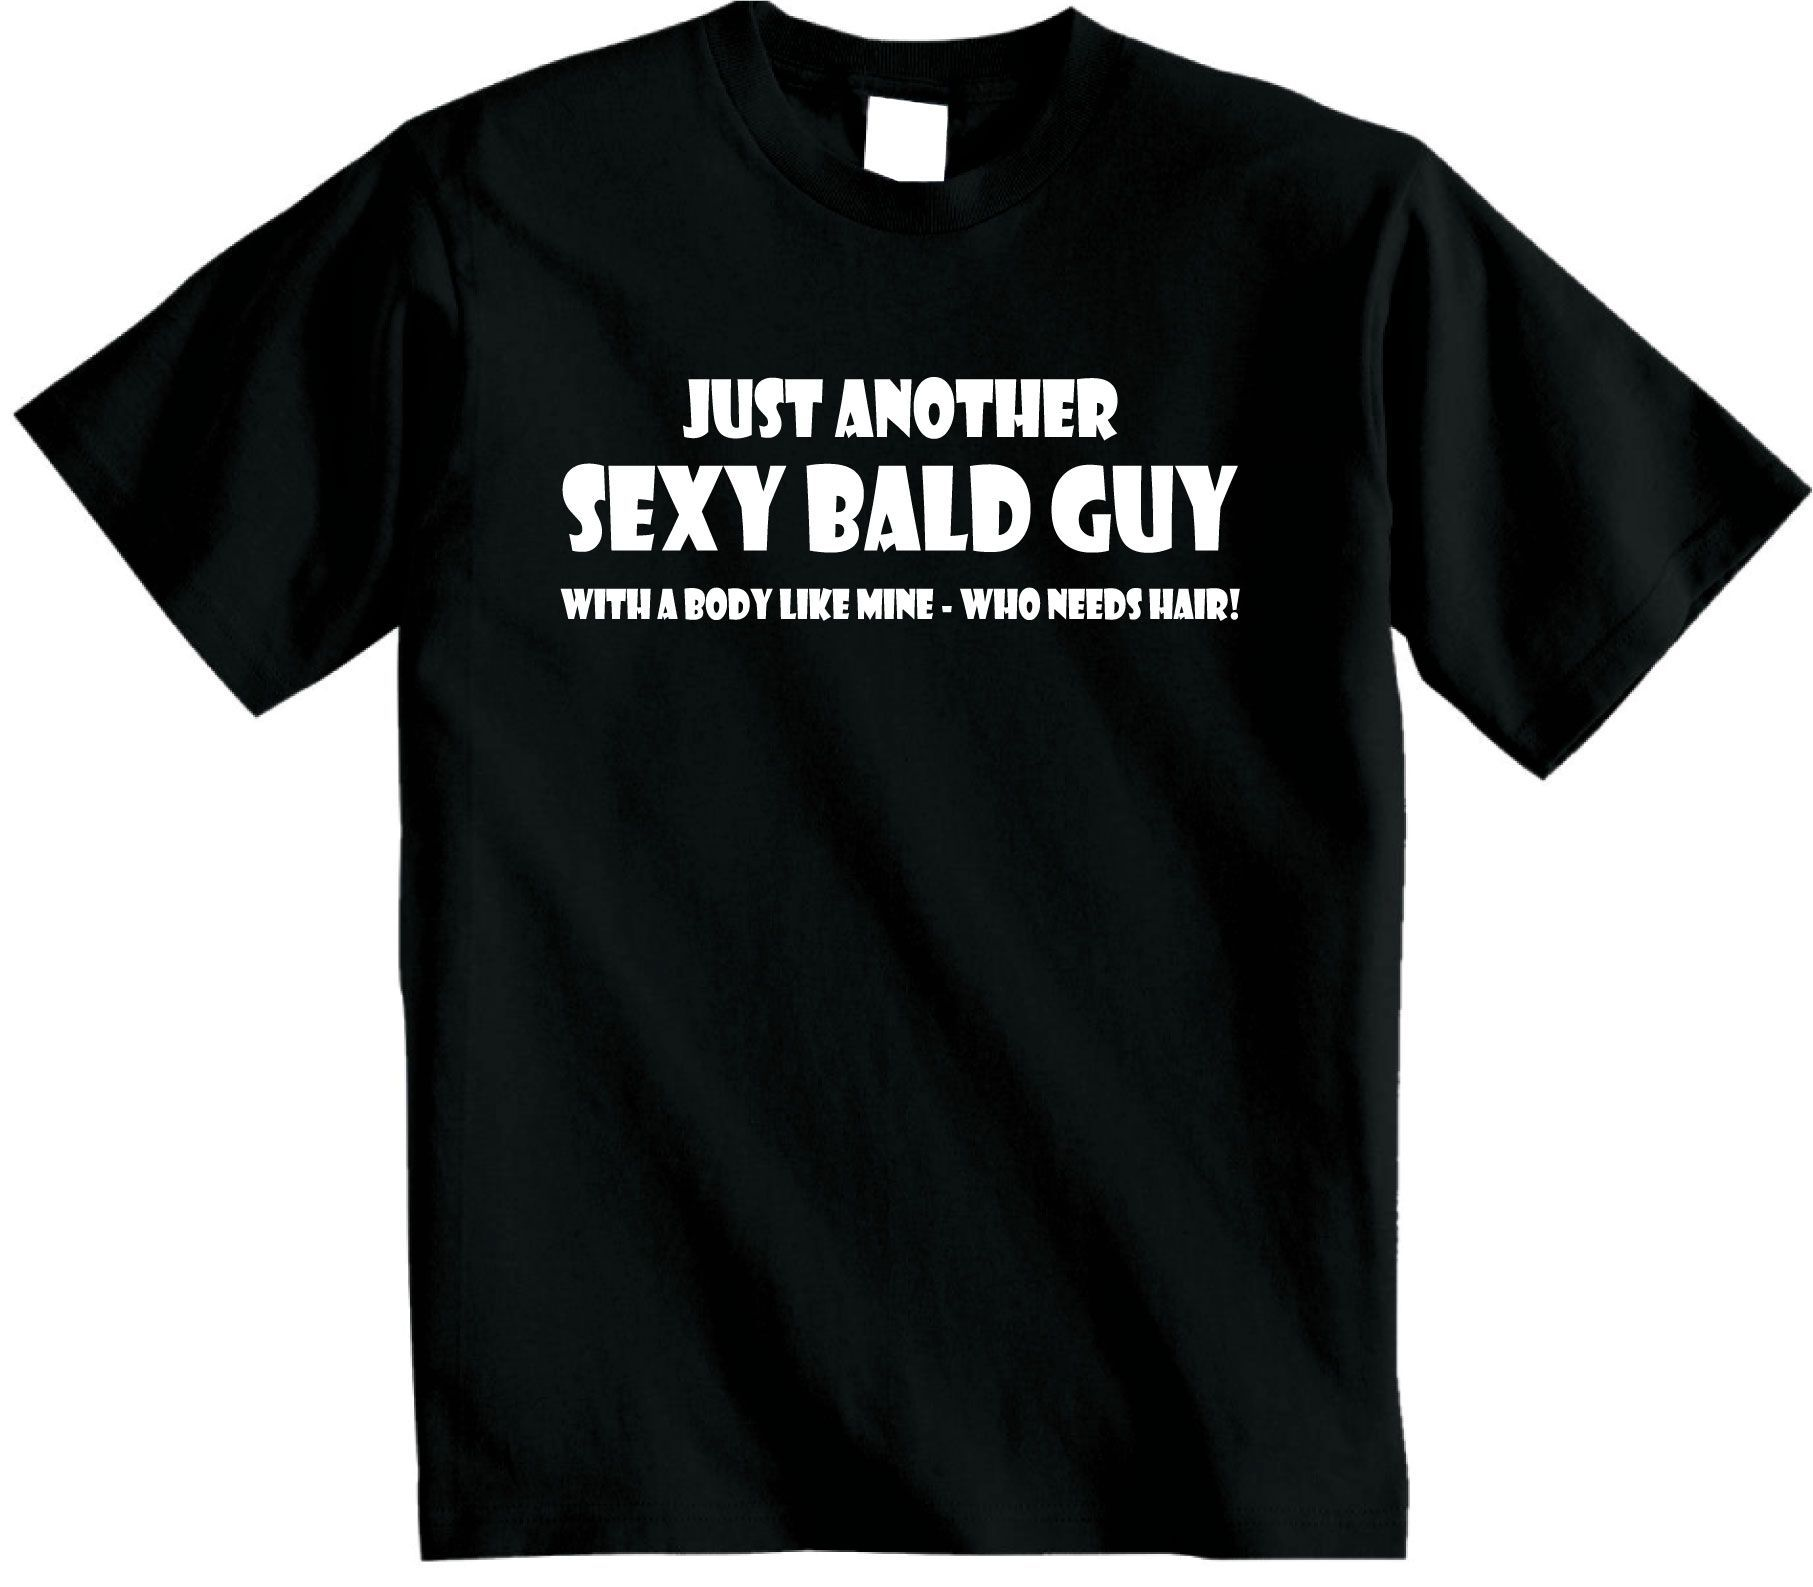 252c30847 Just another sexy bald guy. With a body like mine - who needs hair. Get  this funny Bald Guy t-shirt from www.shoebob.co.uk